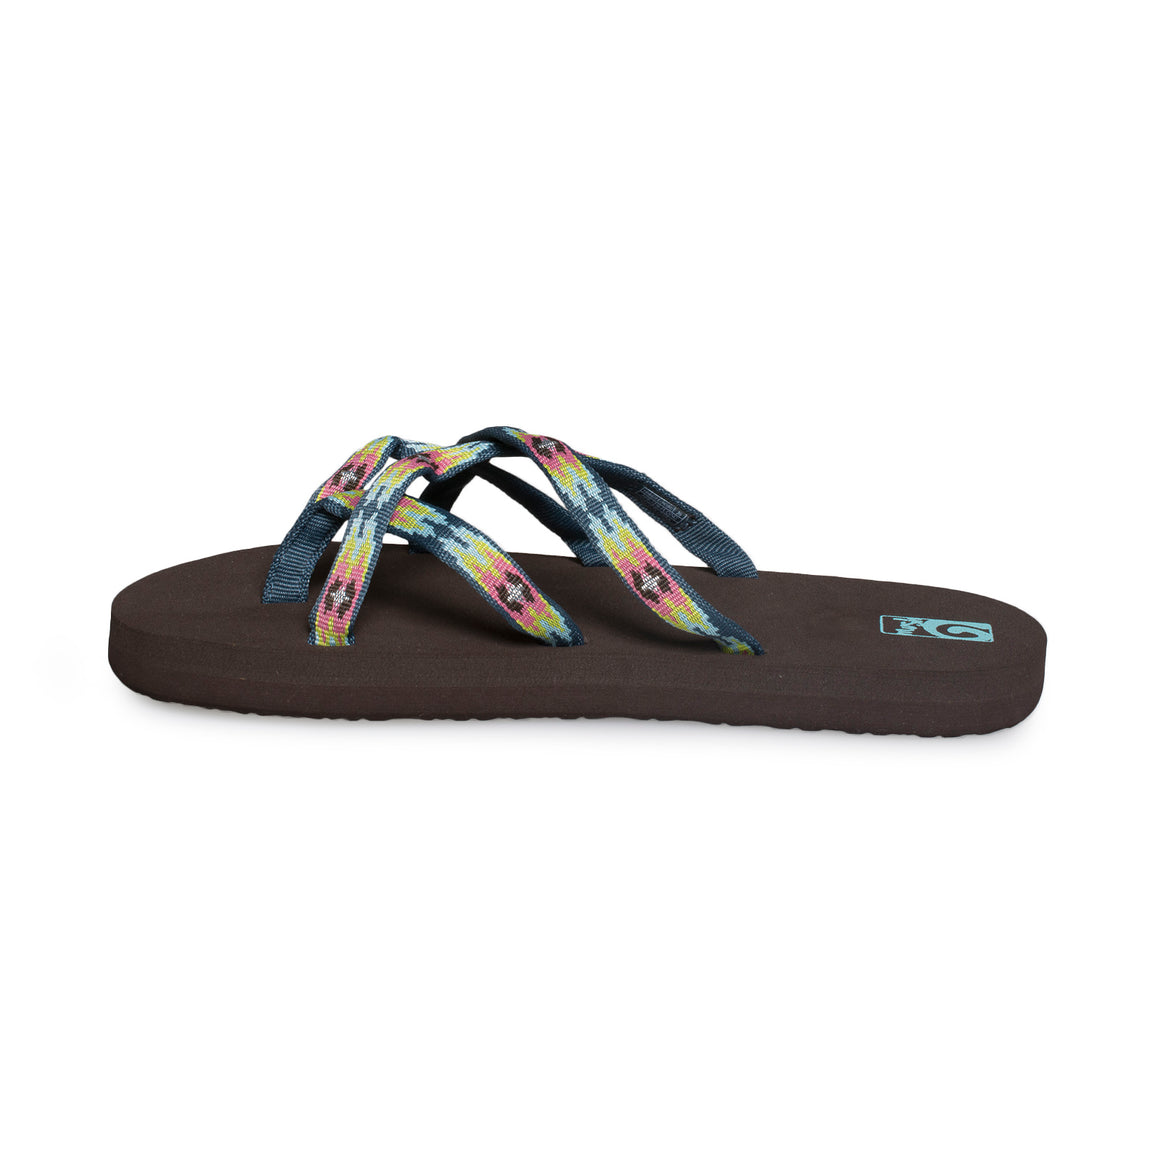 TEVA Olowahu Pana Chocolate Flip Flop - Youth